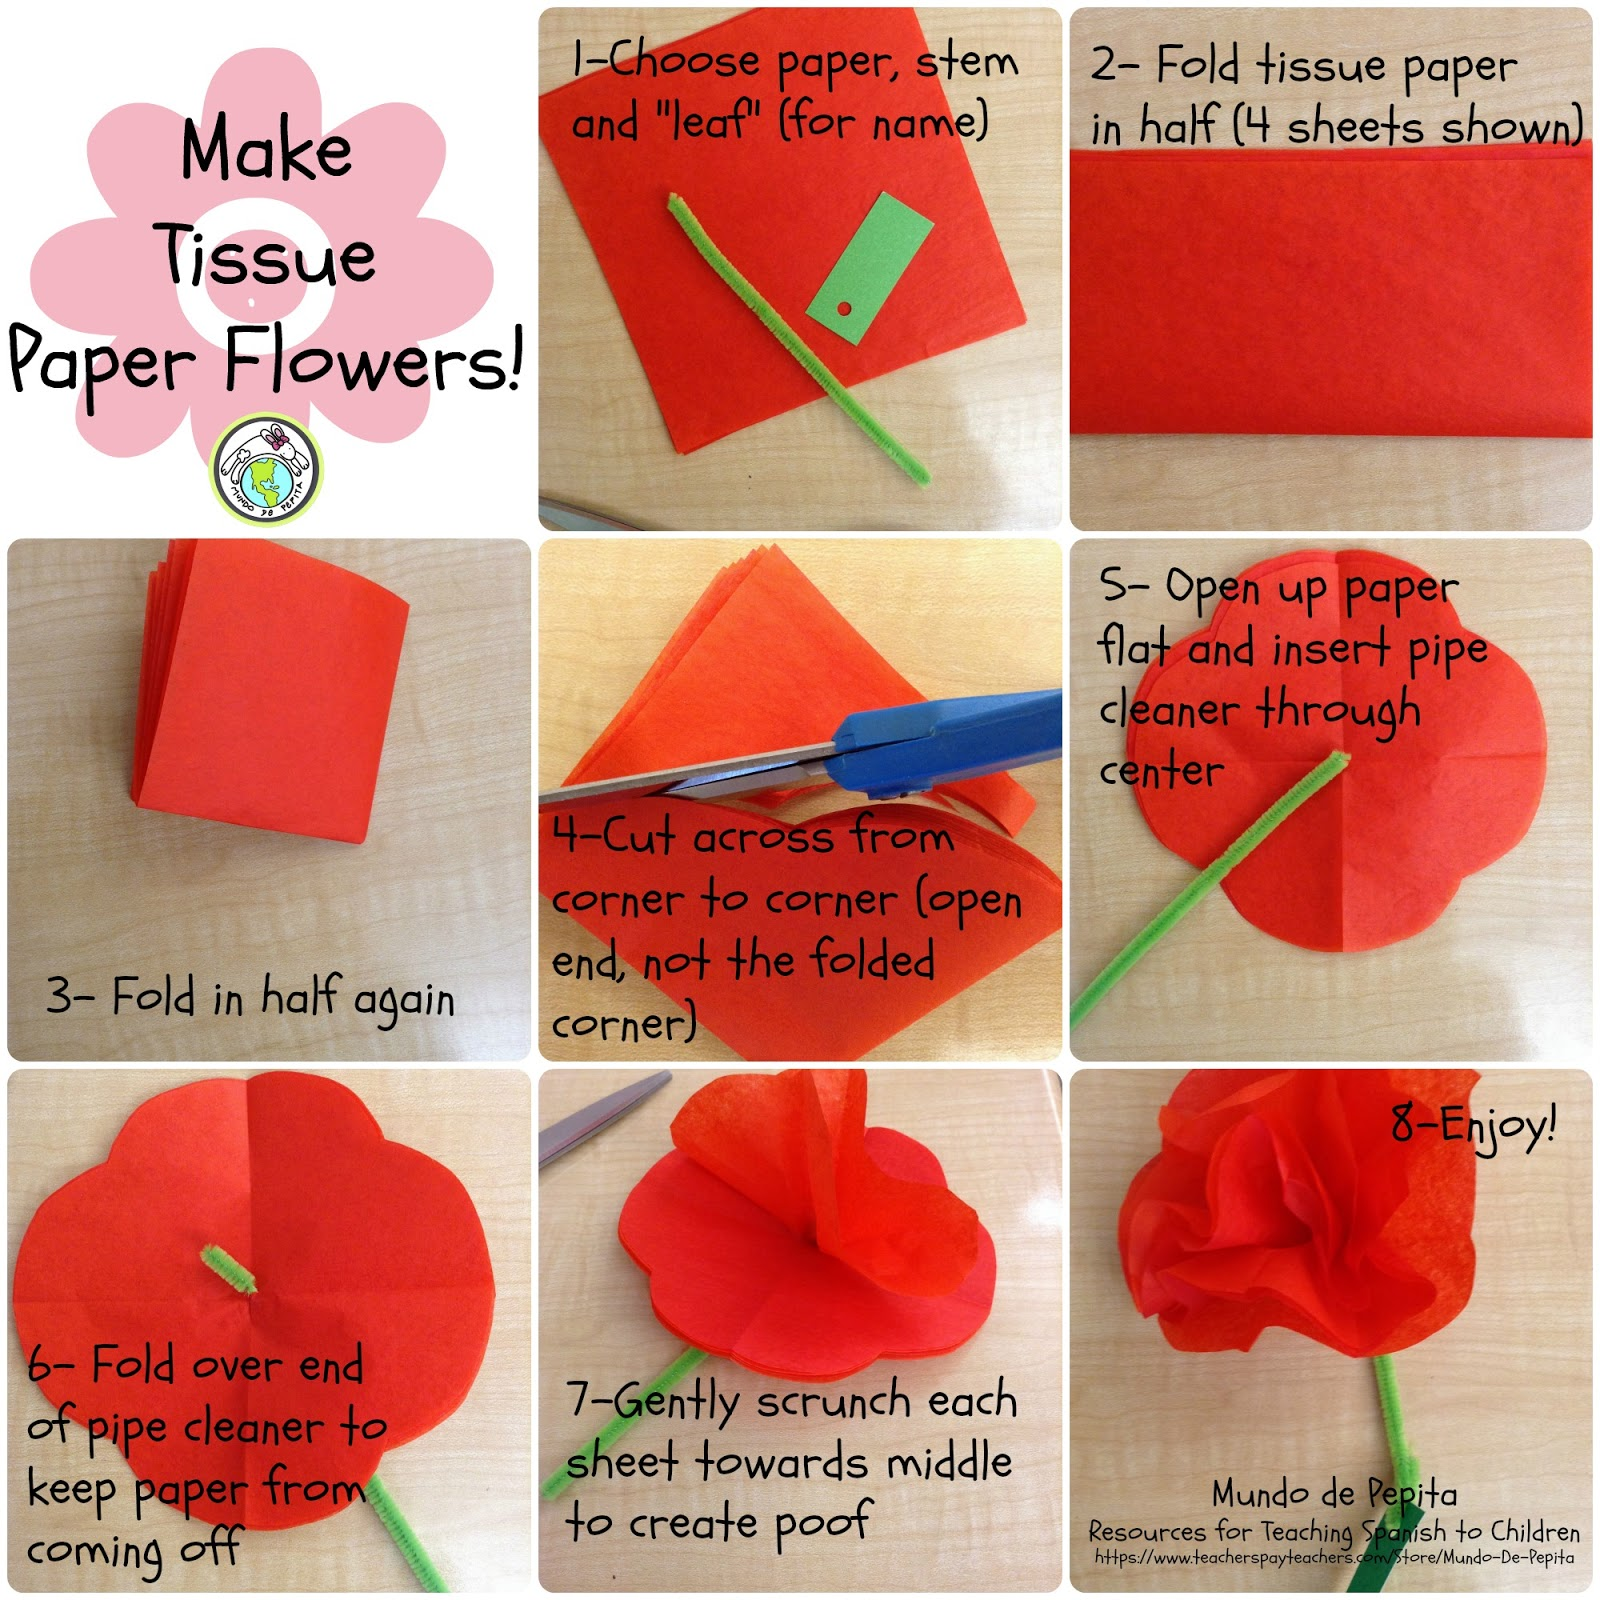 7 steps for making tissue paper flowers mundo de pepita making tissue paper flowers for cinco de mayo and are looking for additional resources check out our printable minibook in our shop mightylinksfo